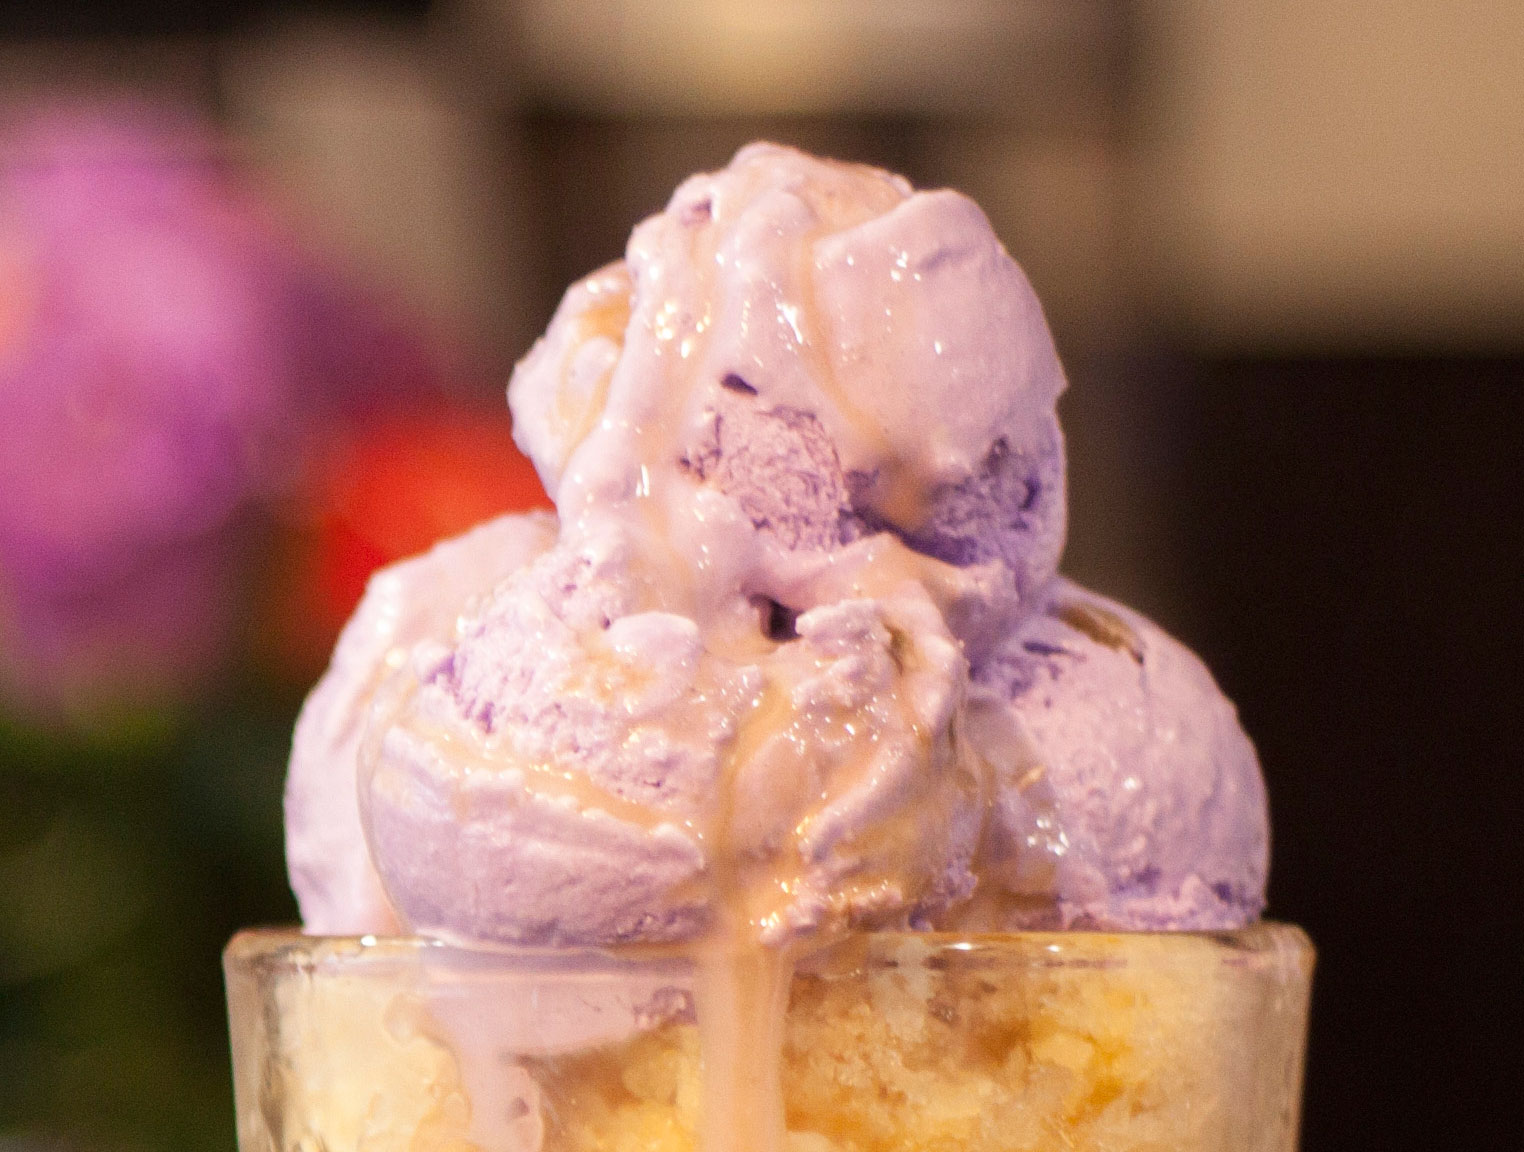 The halo-halo at Barako Kávéház is topped with three scoops of homemade ube ice cream. (Photo by Bruno Koch)